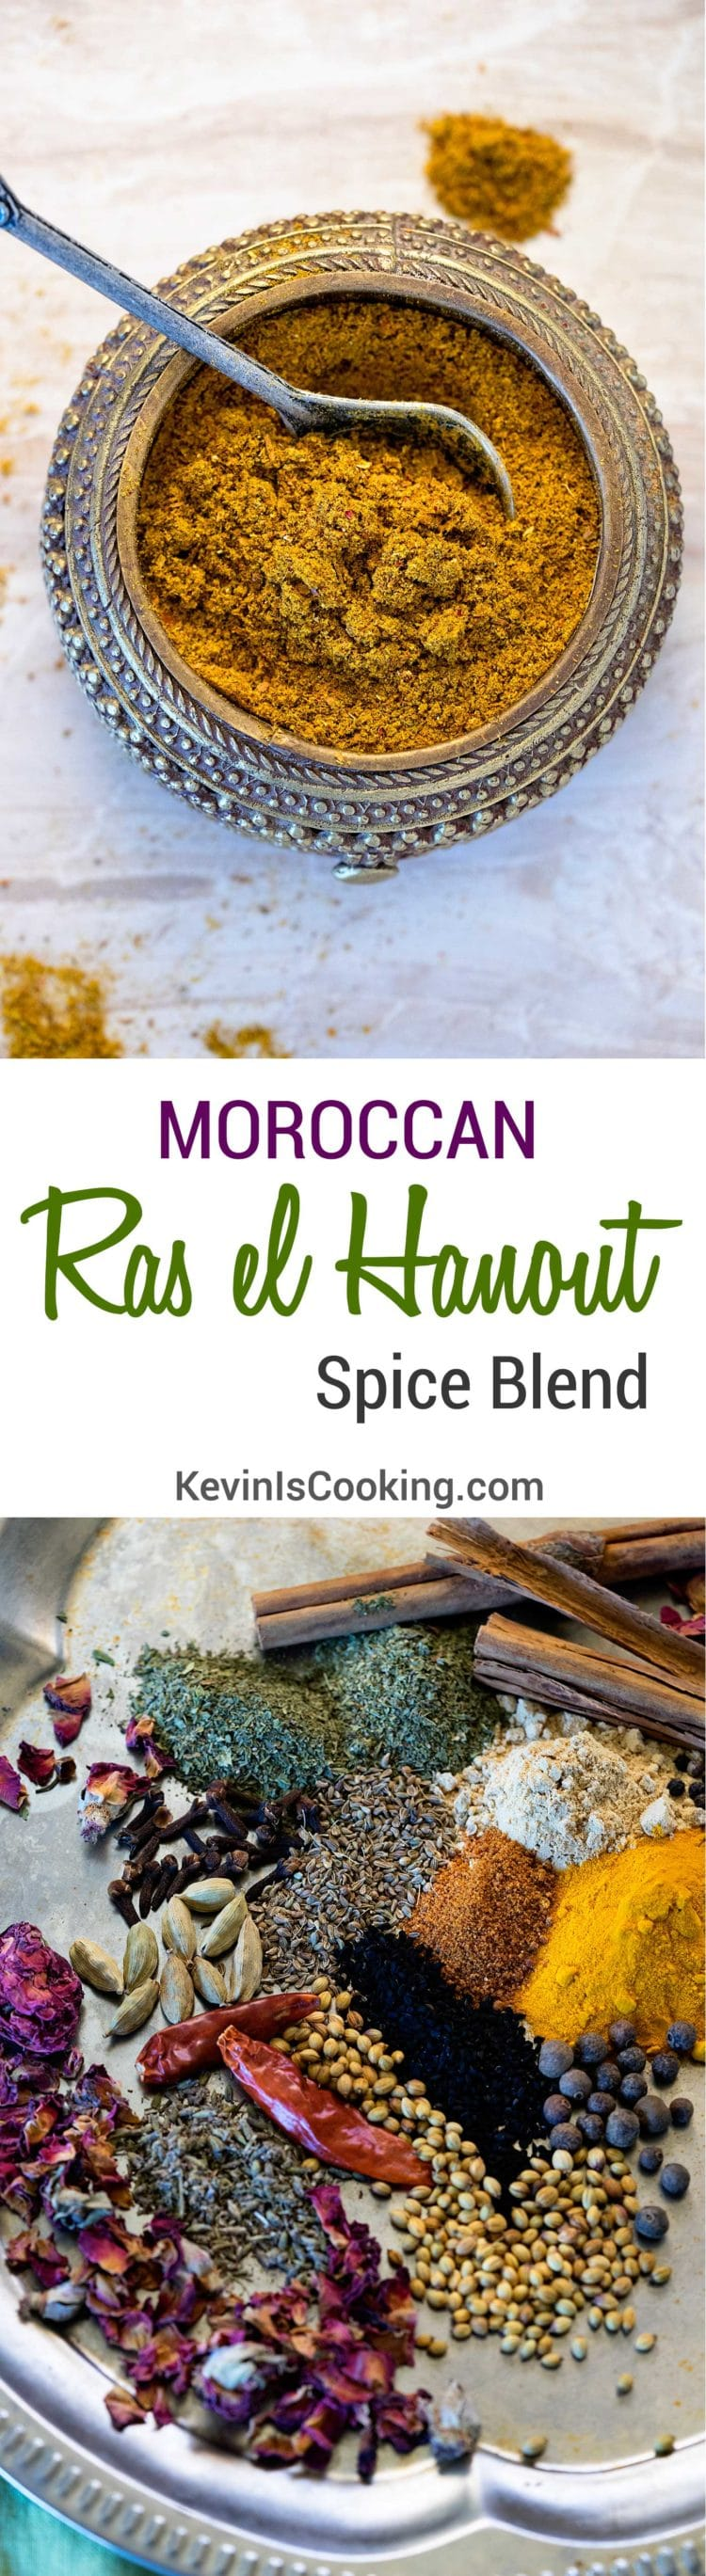 Like curry powders, there is no one recipe for a Ras el Hanout Spice blend, an outrageously aromatic North African spice blend with influences from India.